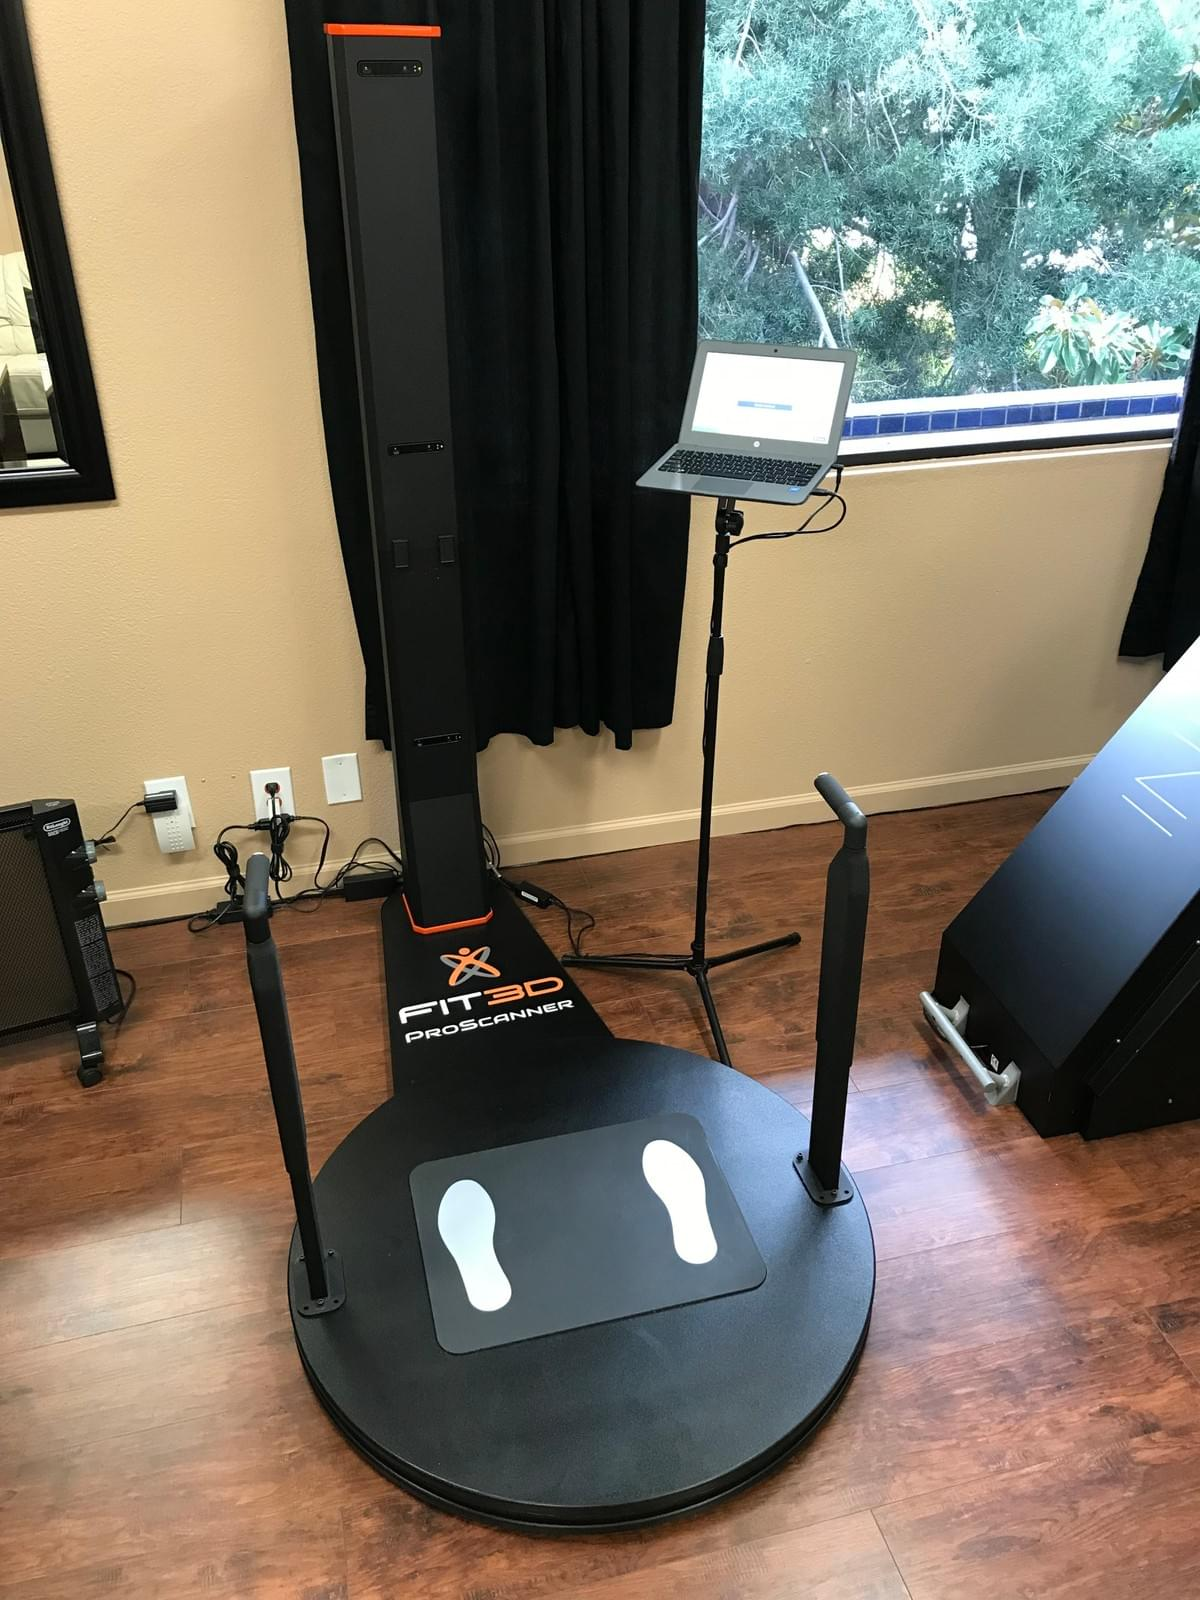 Fit 3D scanner for complete tracking of body composition changes